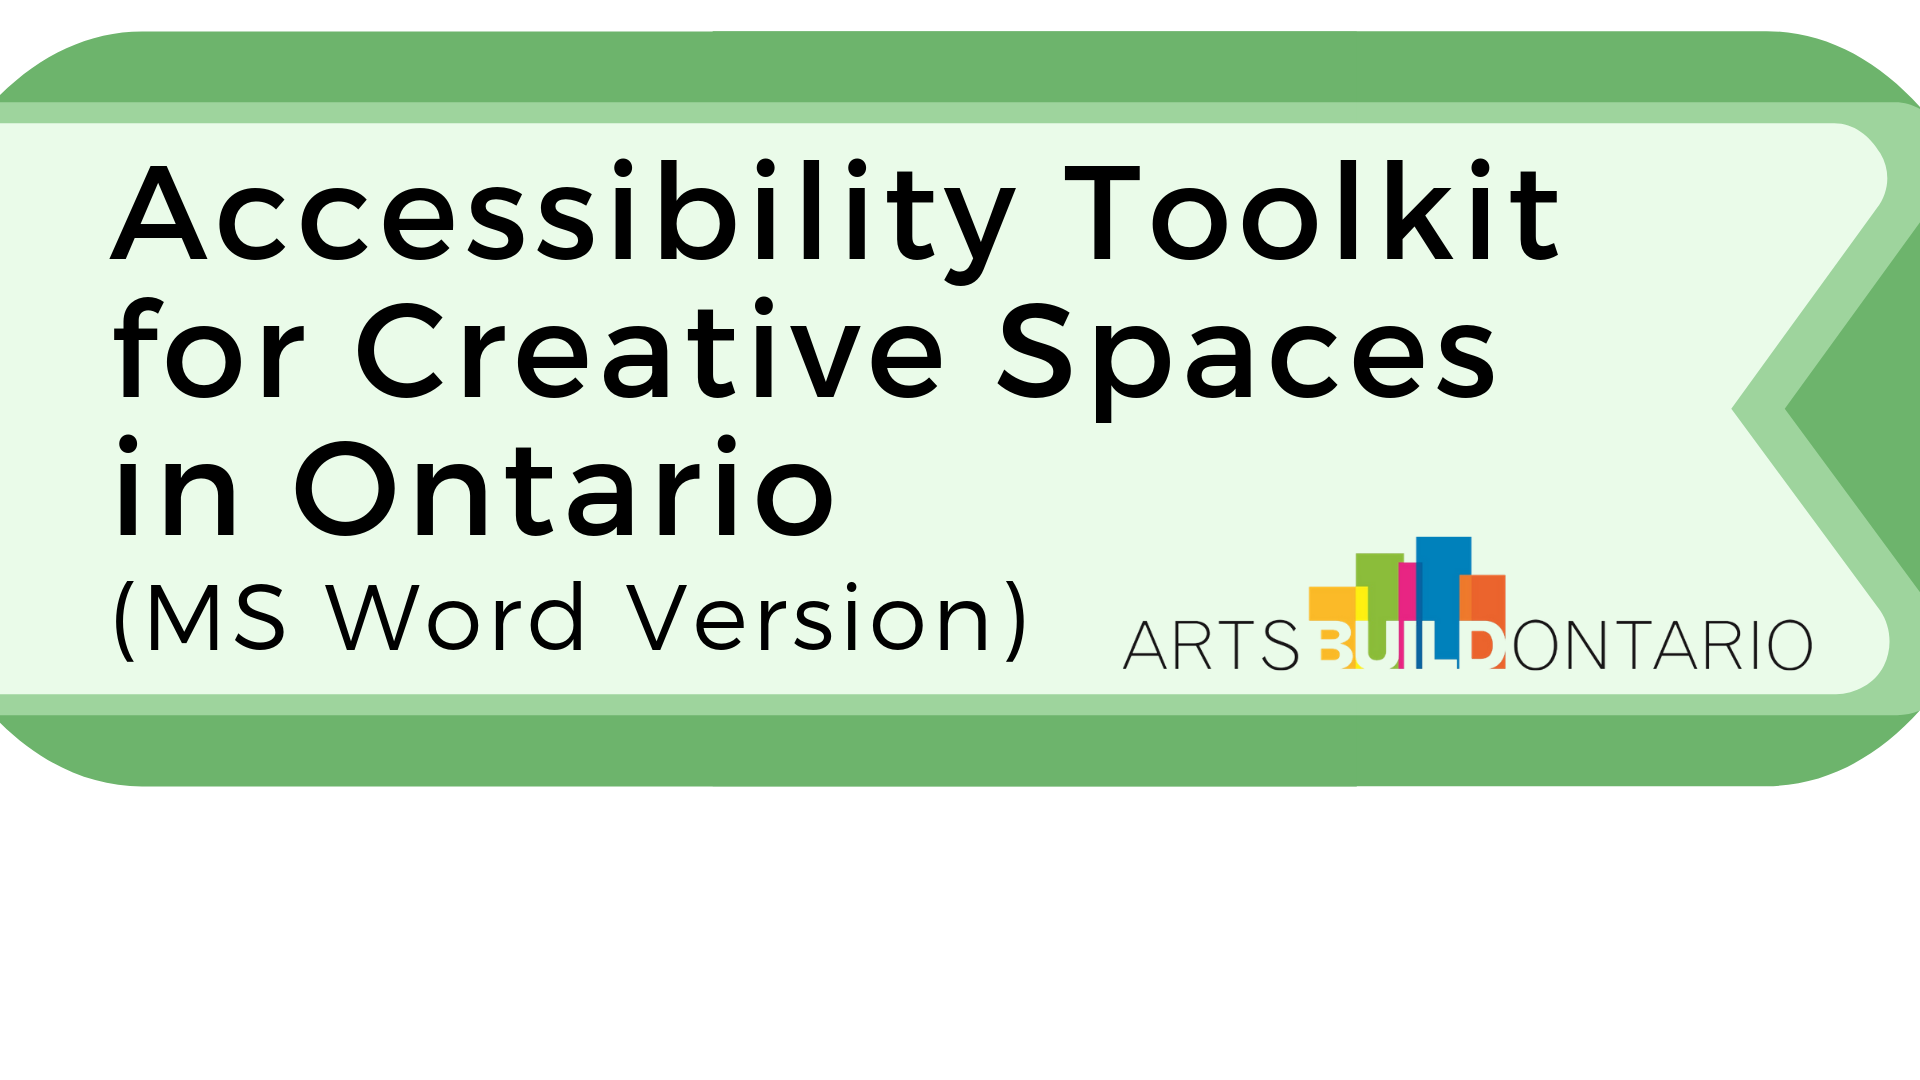 Button to access English Microsoft Word version of Accessibility Toolkit for Creative Spaces in Ontario